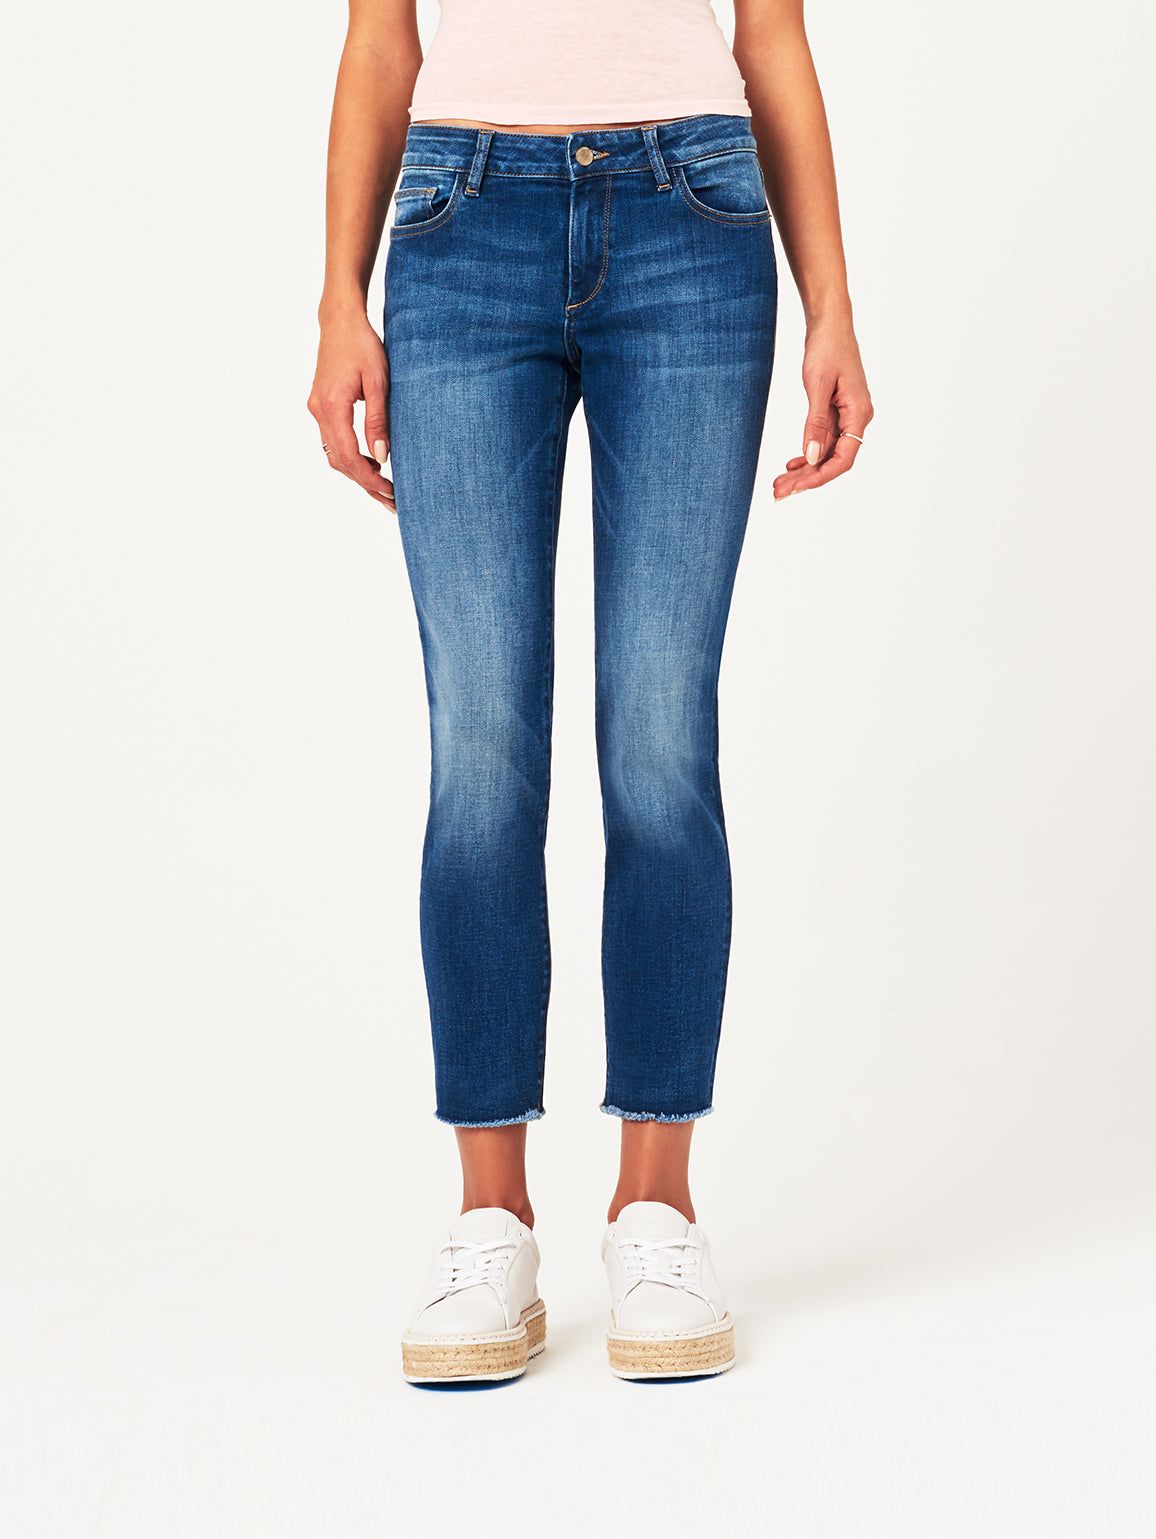 Image of Coco Mid Rise Curvy Ankle Skinny / Callahan